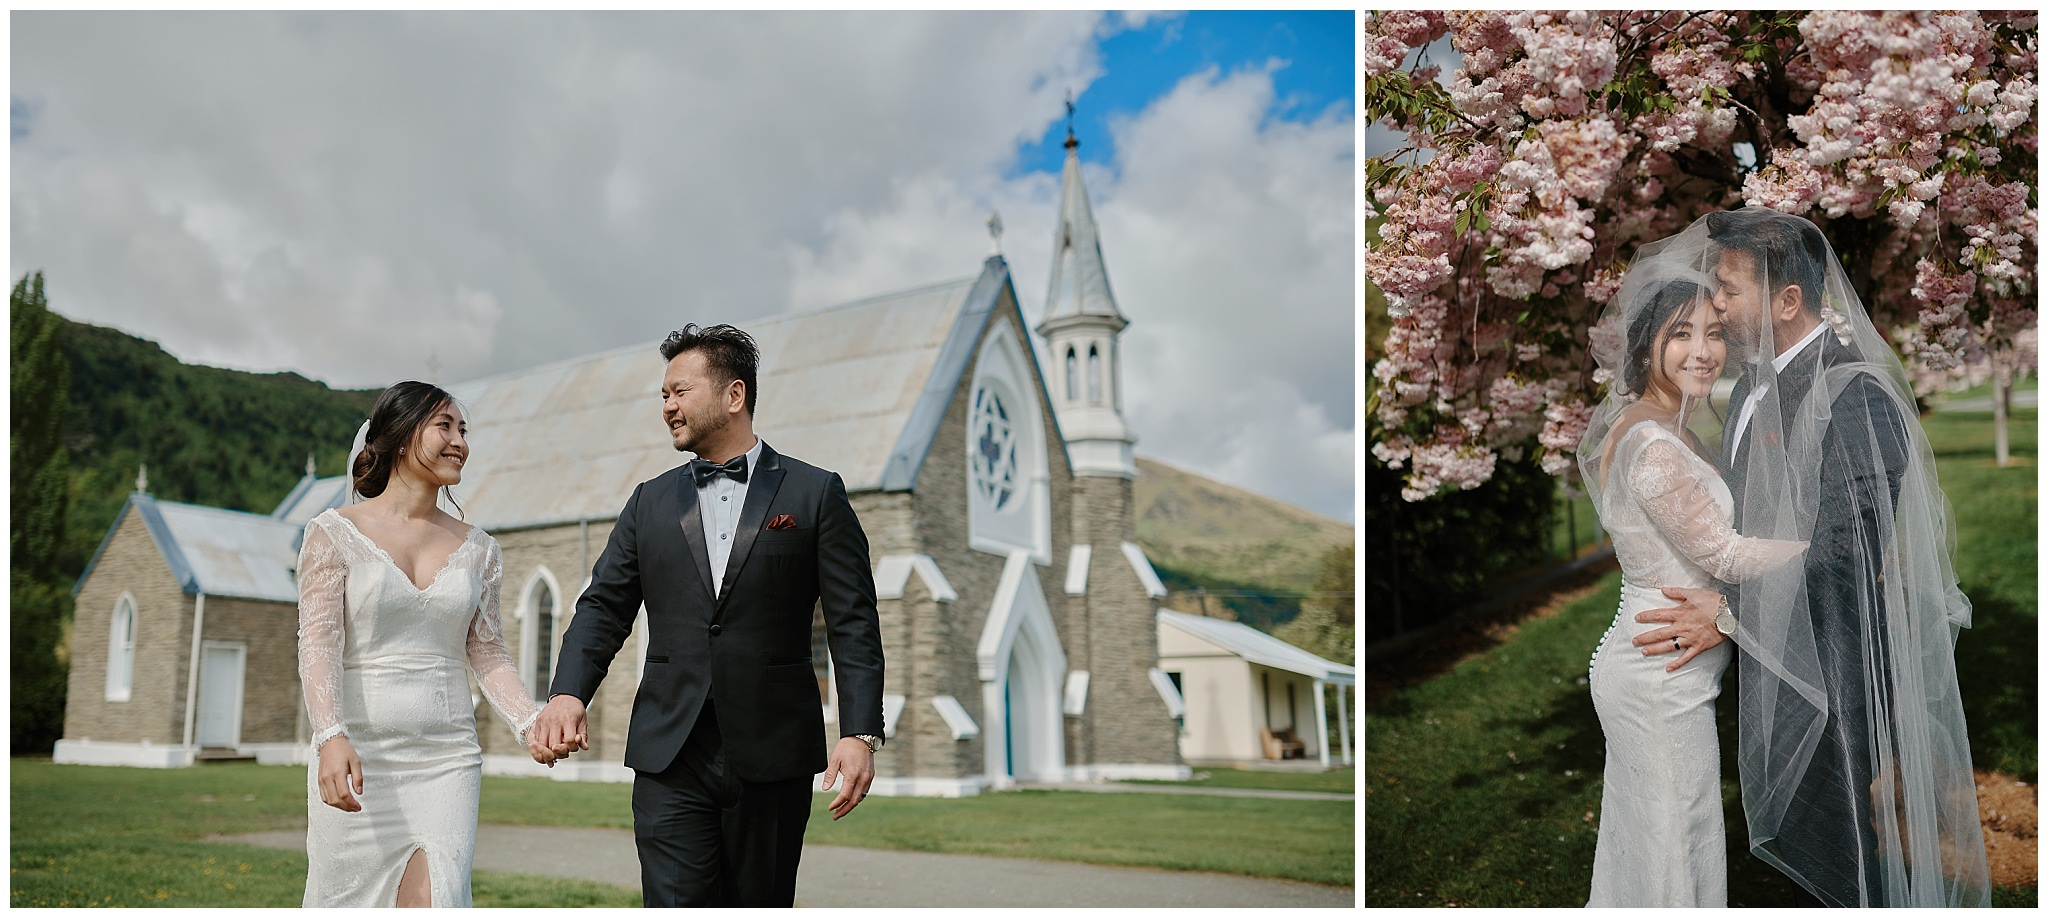 Queenstown New Zealand Prewedding Photographer_0077.jpg